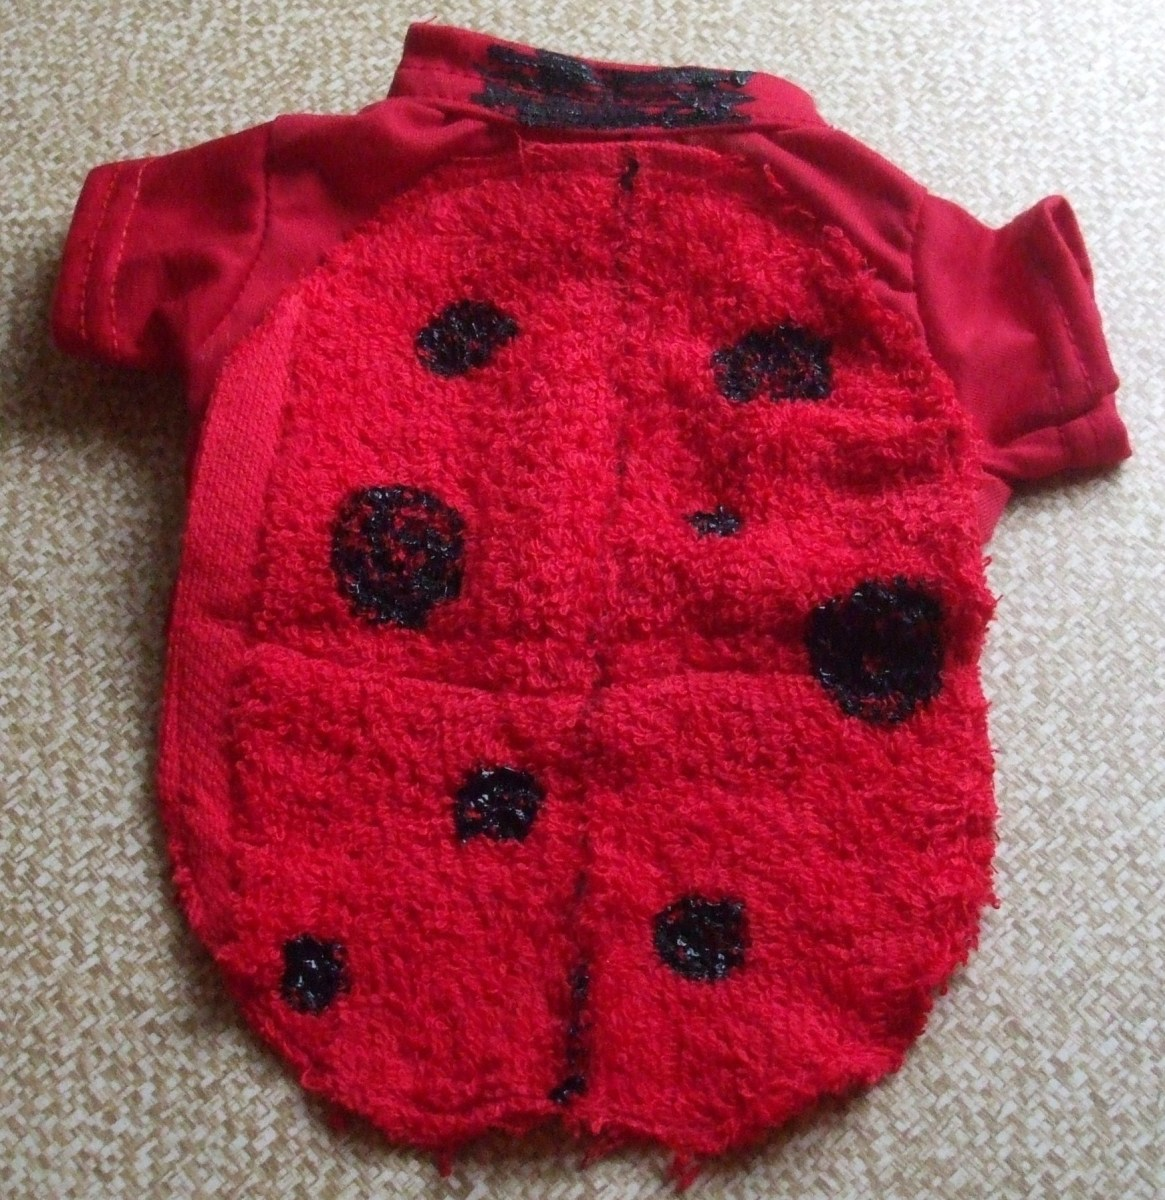 The finished kitten ladybug costume.